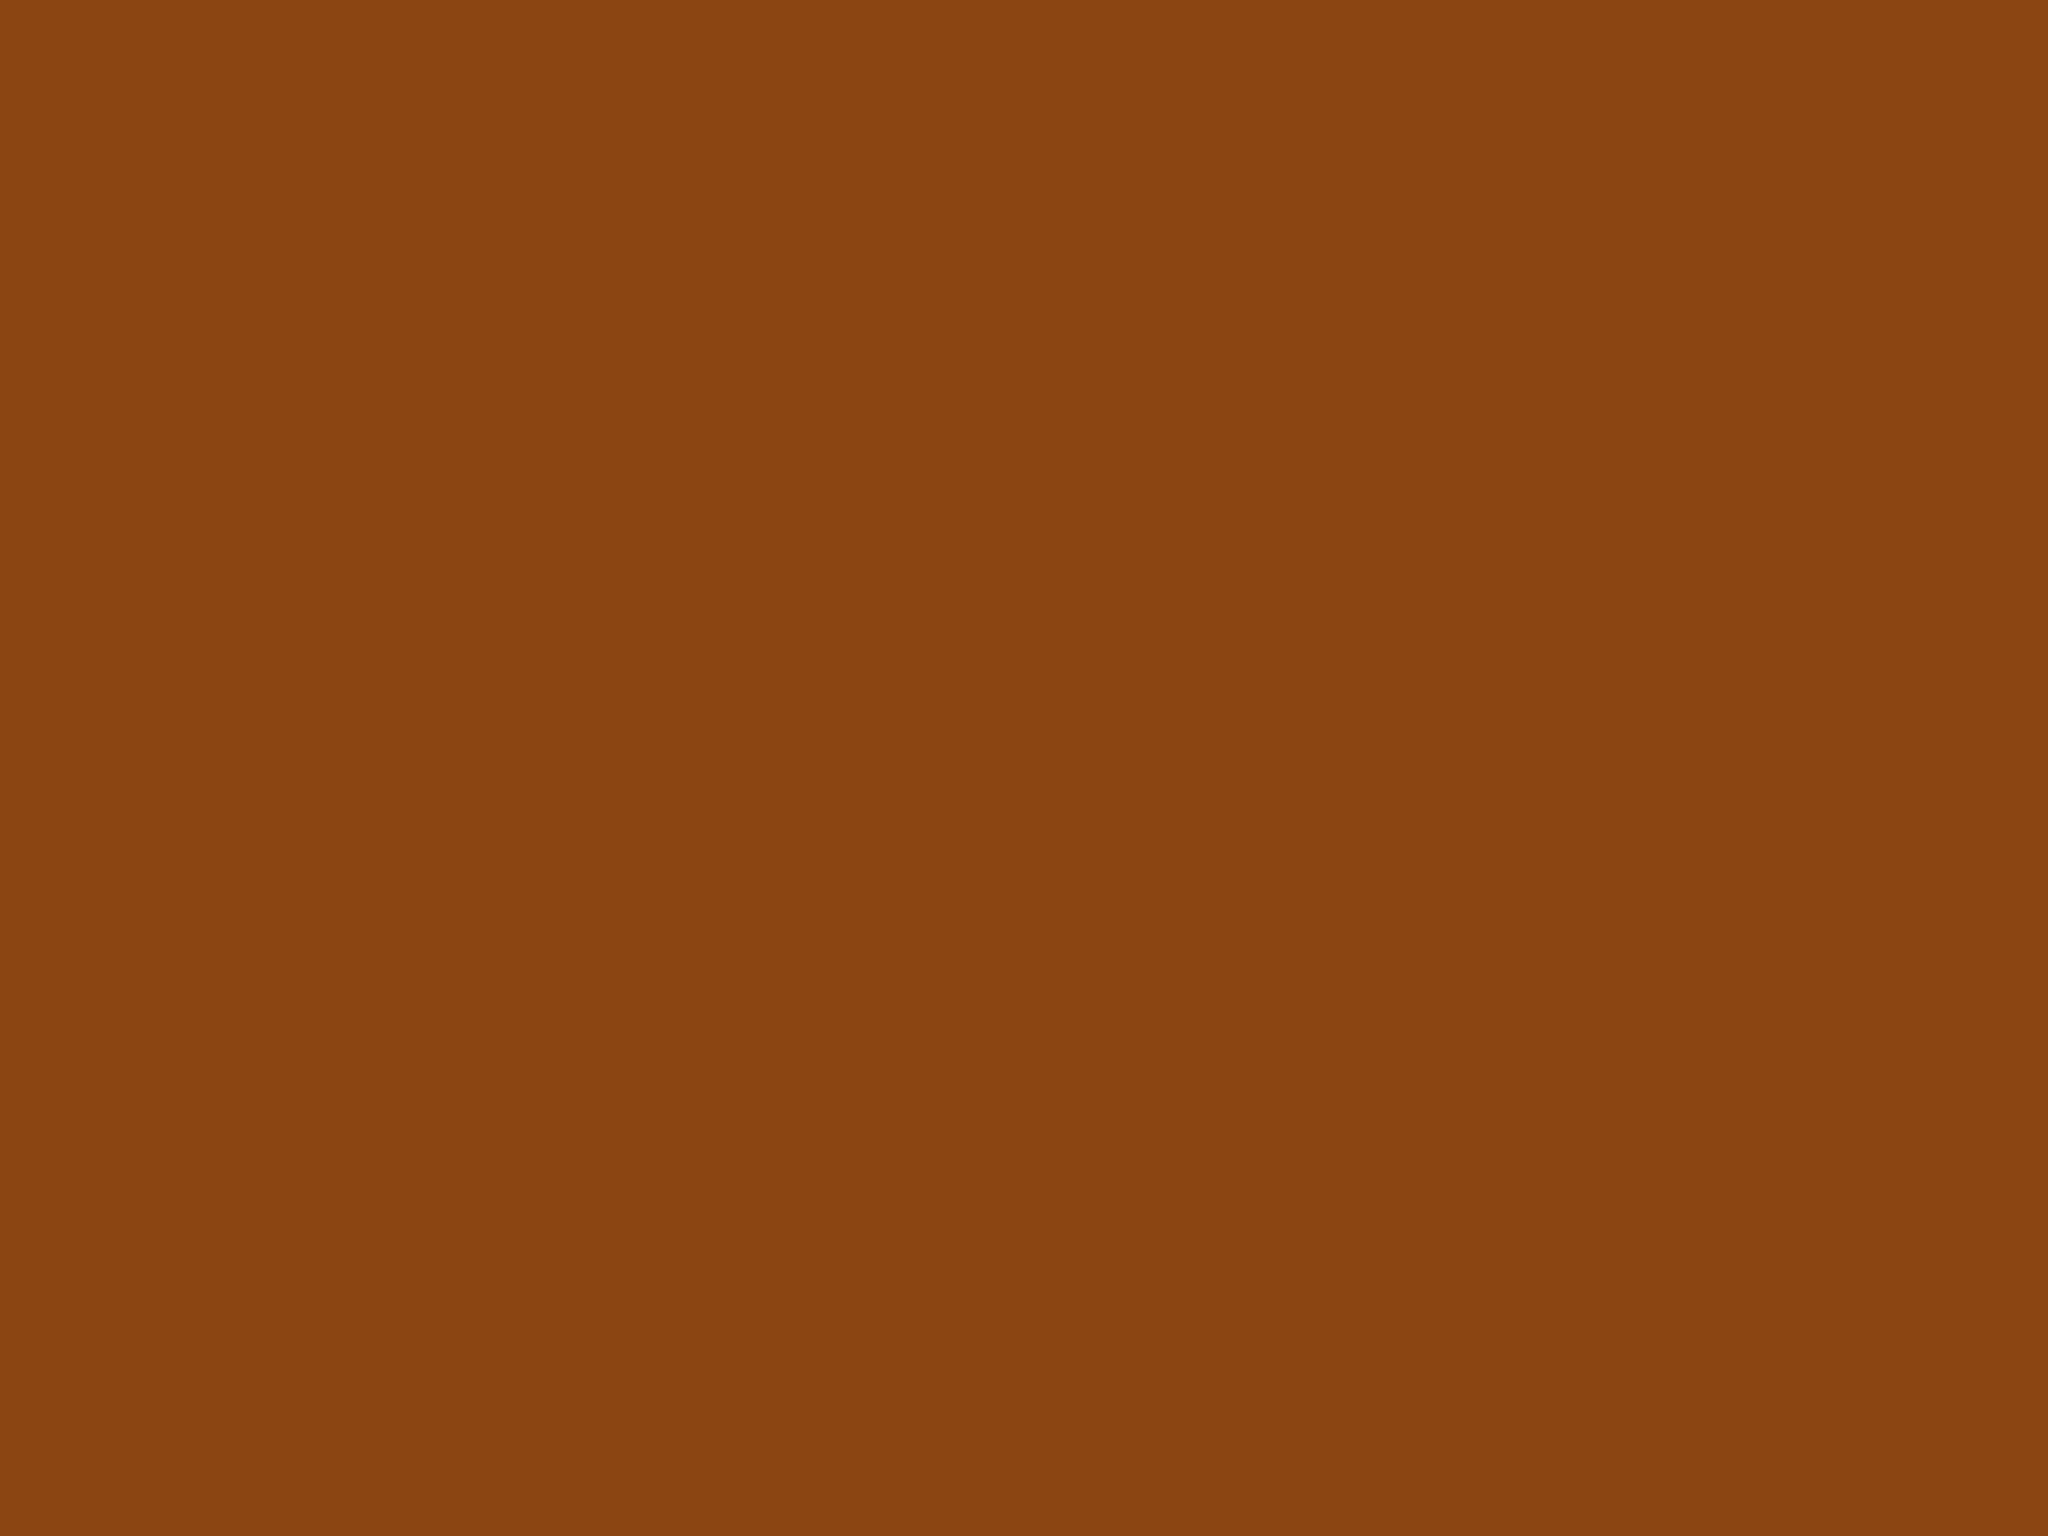 2048x1536 Saddle Brown Solid Color Background